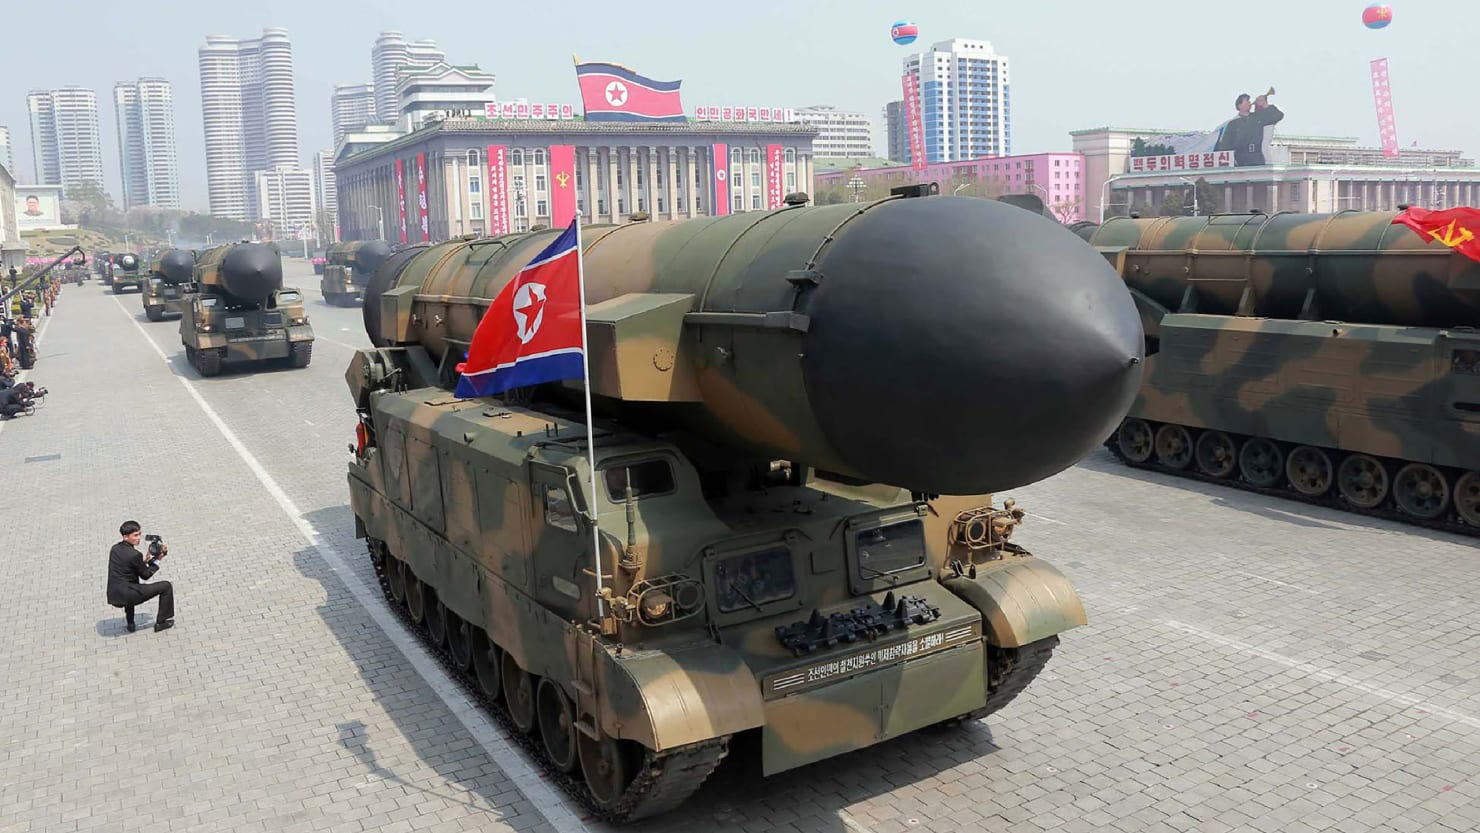 Frances Nuclear Arsenal Could Kill Millions of People in